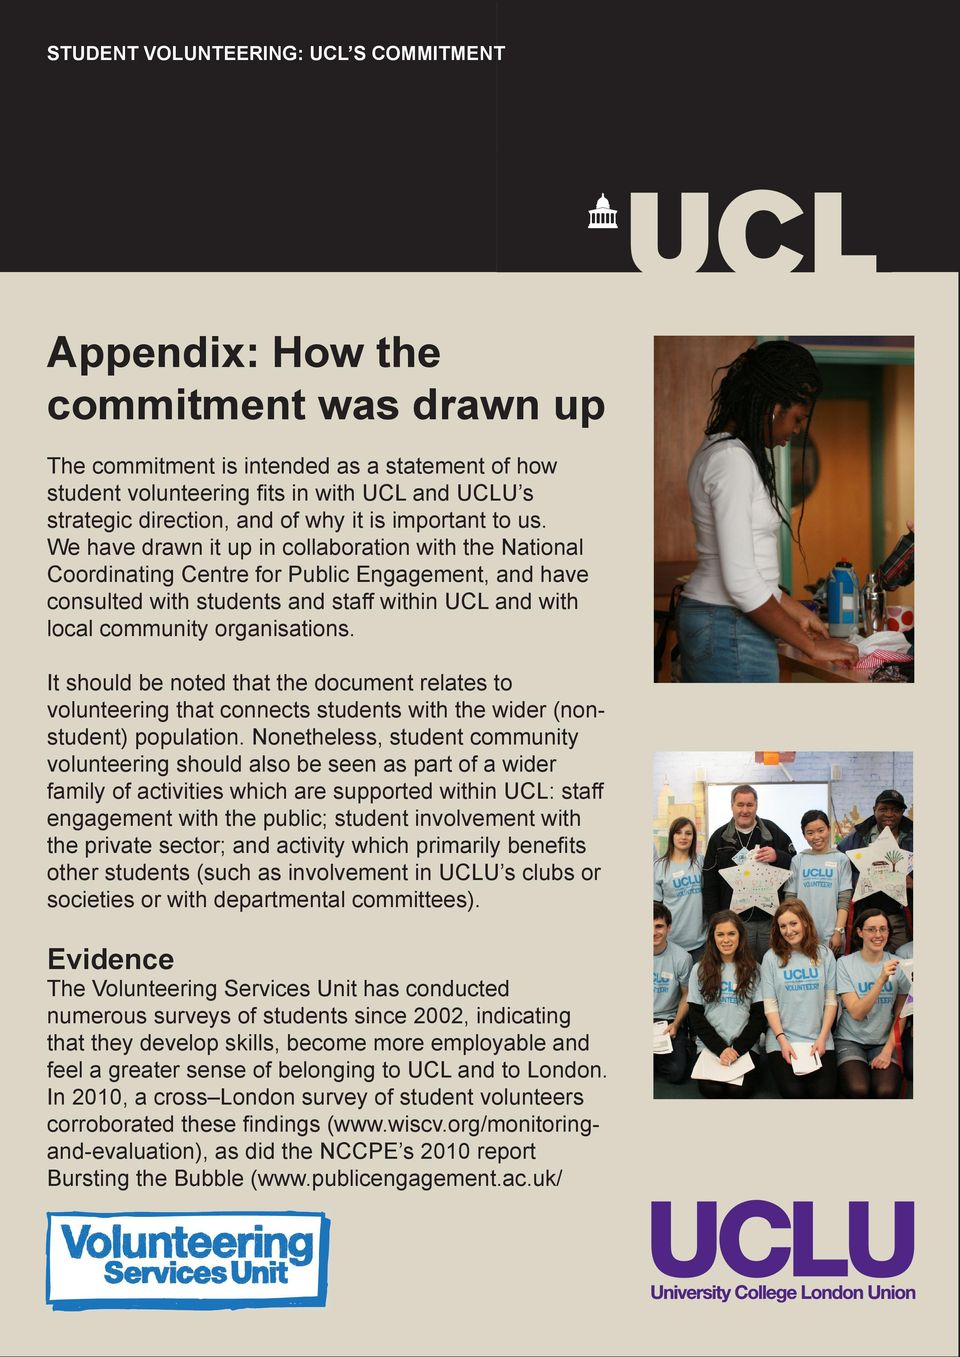 We have drawn it up in collaboration with the National Coordinating Centre for Public Engagement, and have consulted with students and staff within UCL and with local community organisations.